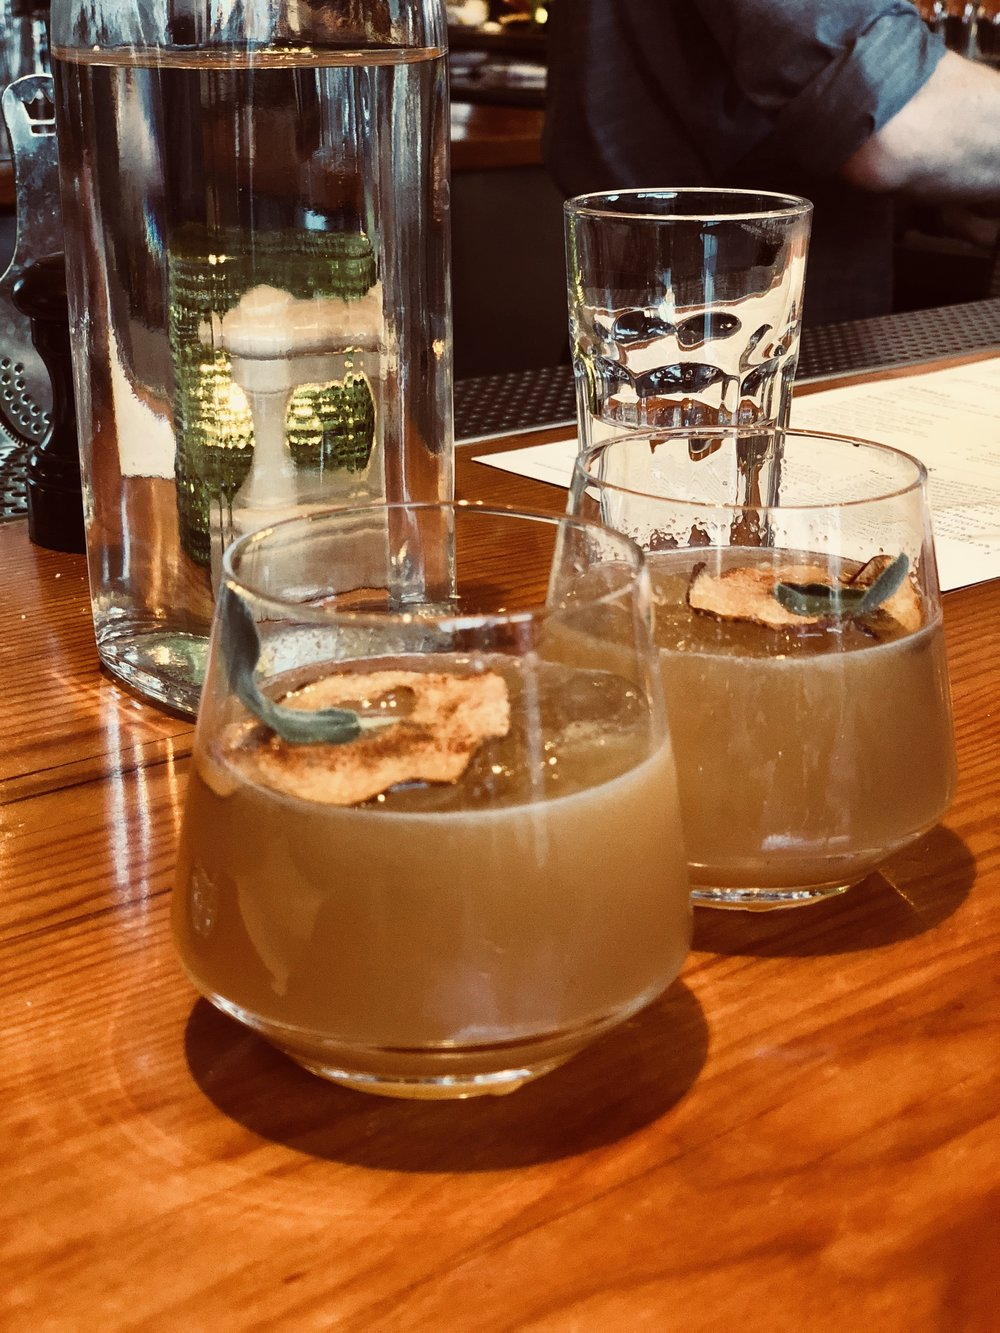 Hatter's Cup - Where to find me: The Kitchen, Denver, COWhat's in me: Cap rock gin, pear-sage puree, honey, amaro lucano, lemon juice, orange bittersWhen to enjoy me: Happy hour